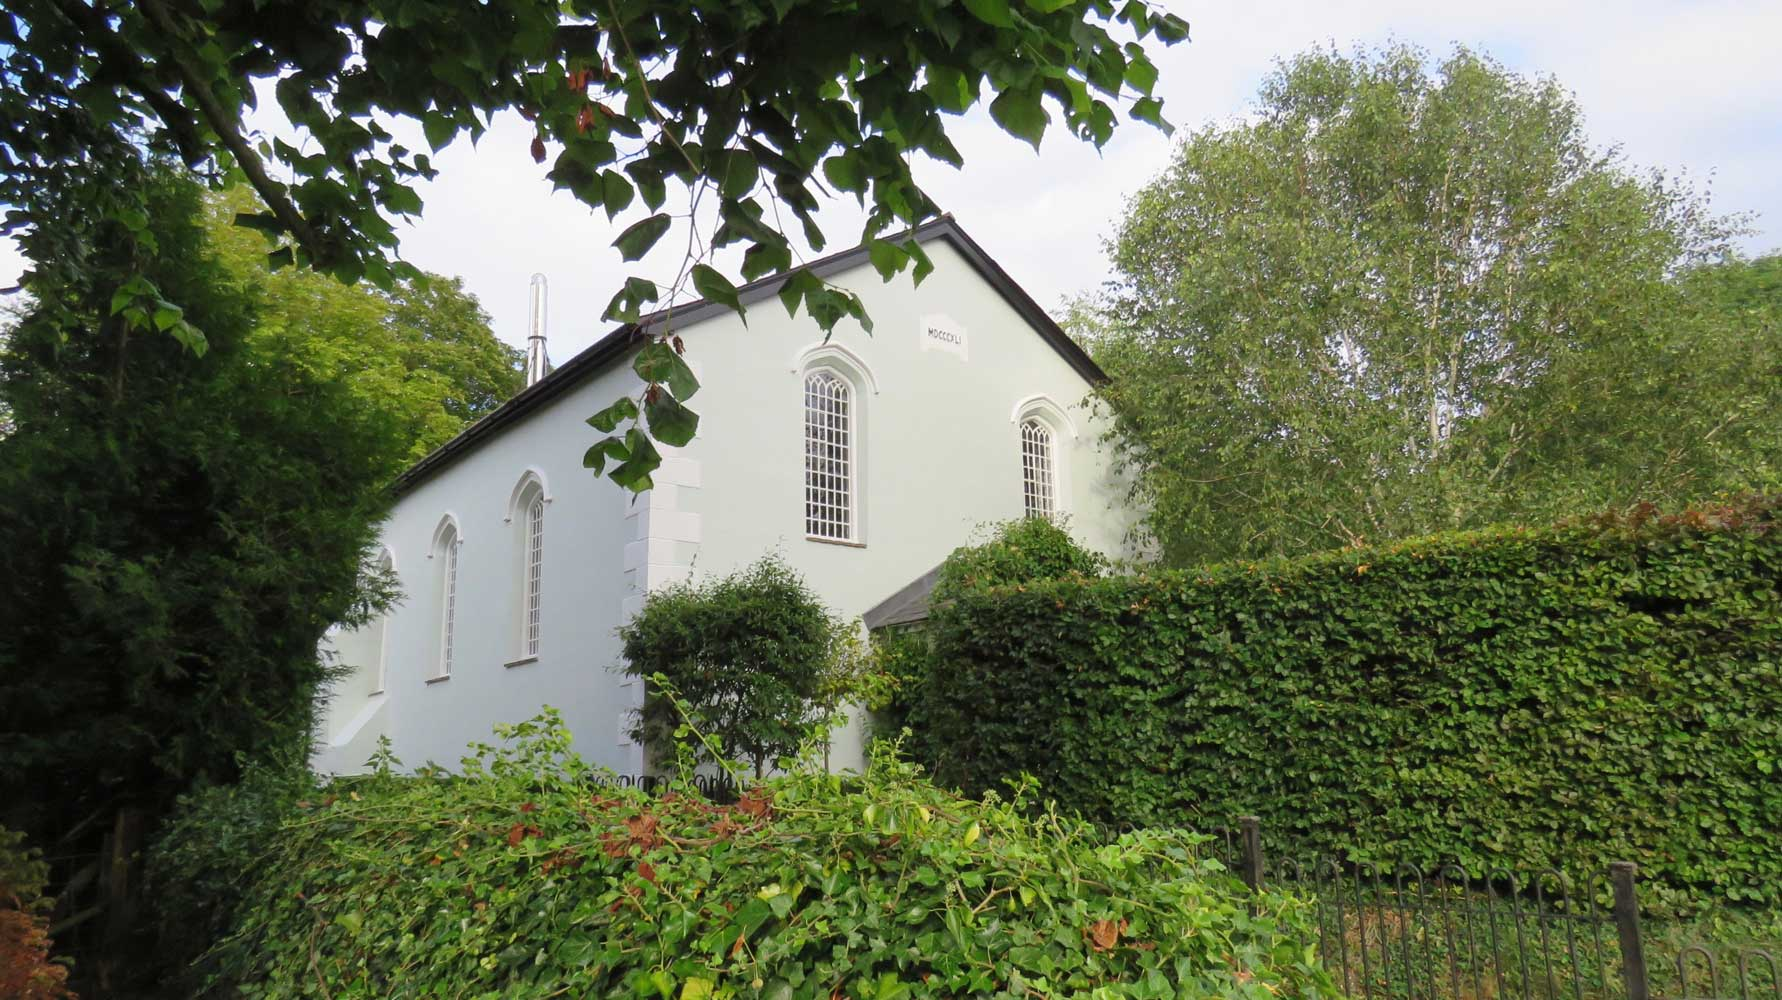 stylishly adapted Baptist chapel from the 1840s | Fishing Packages with Bed, Breakfast and Meals